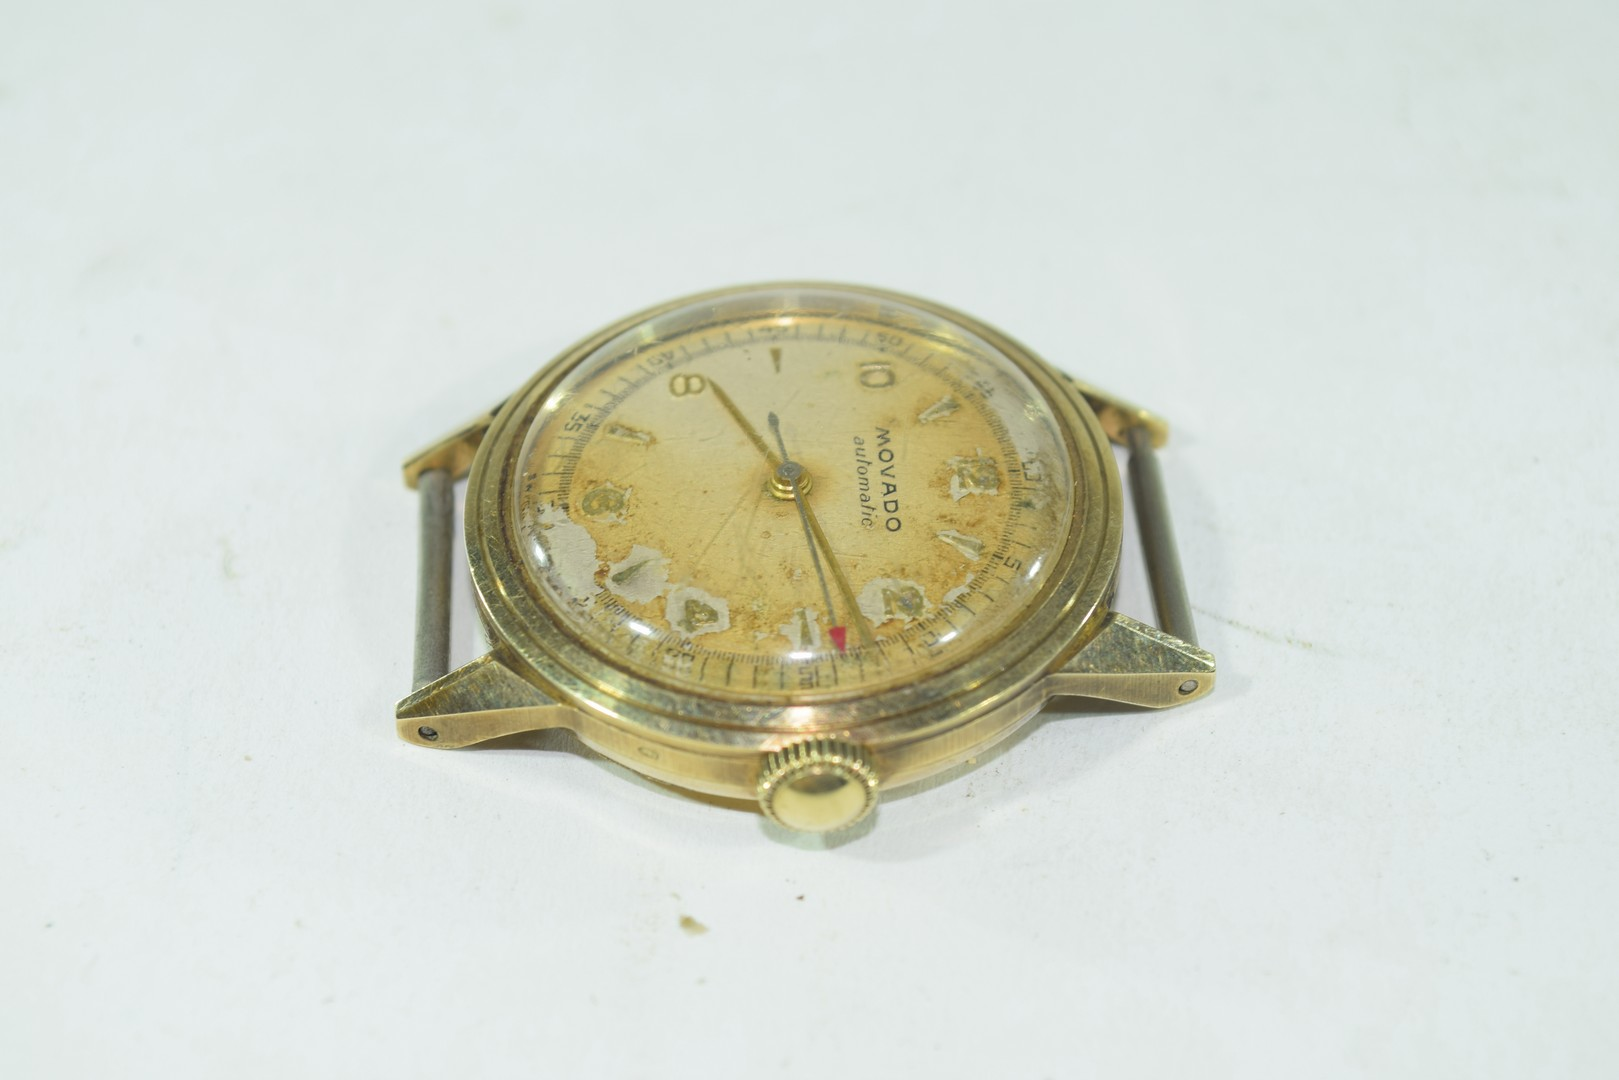 Movado gents yellow metal automatic wrist watch - Image 4 of 4